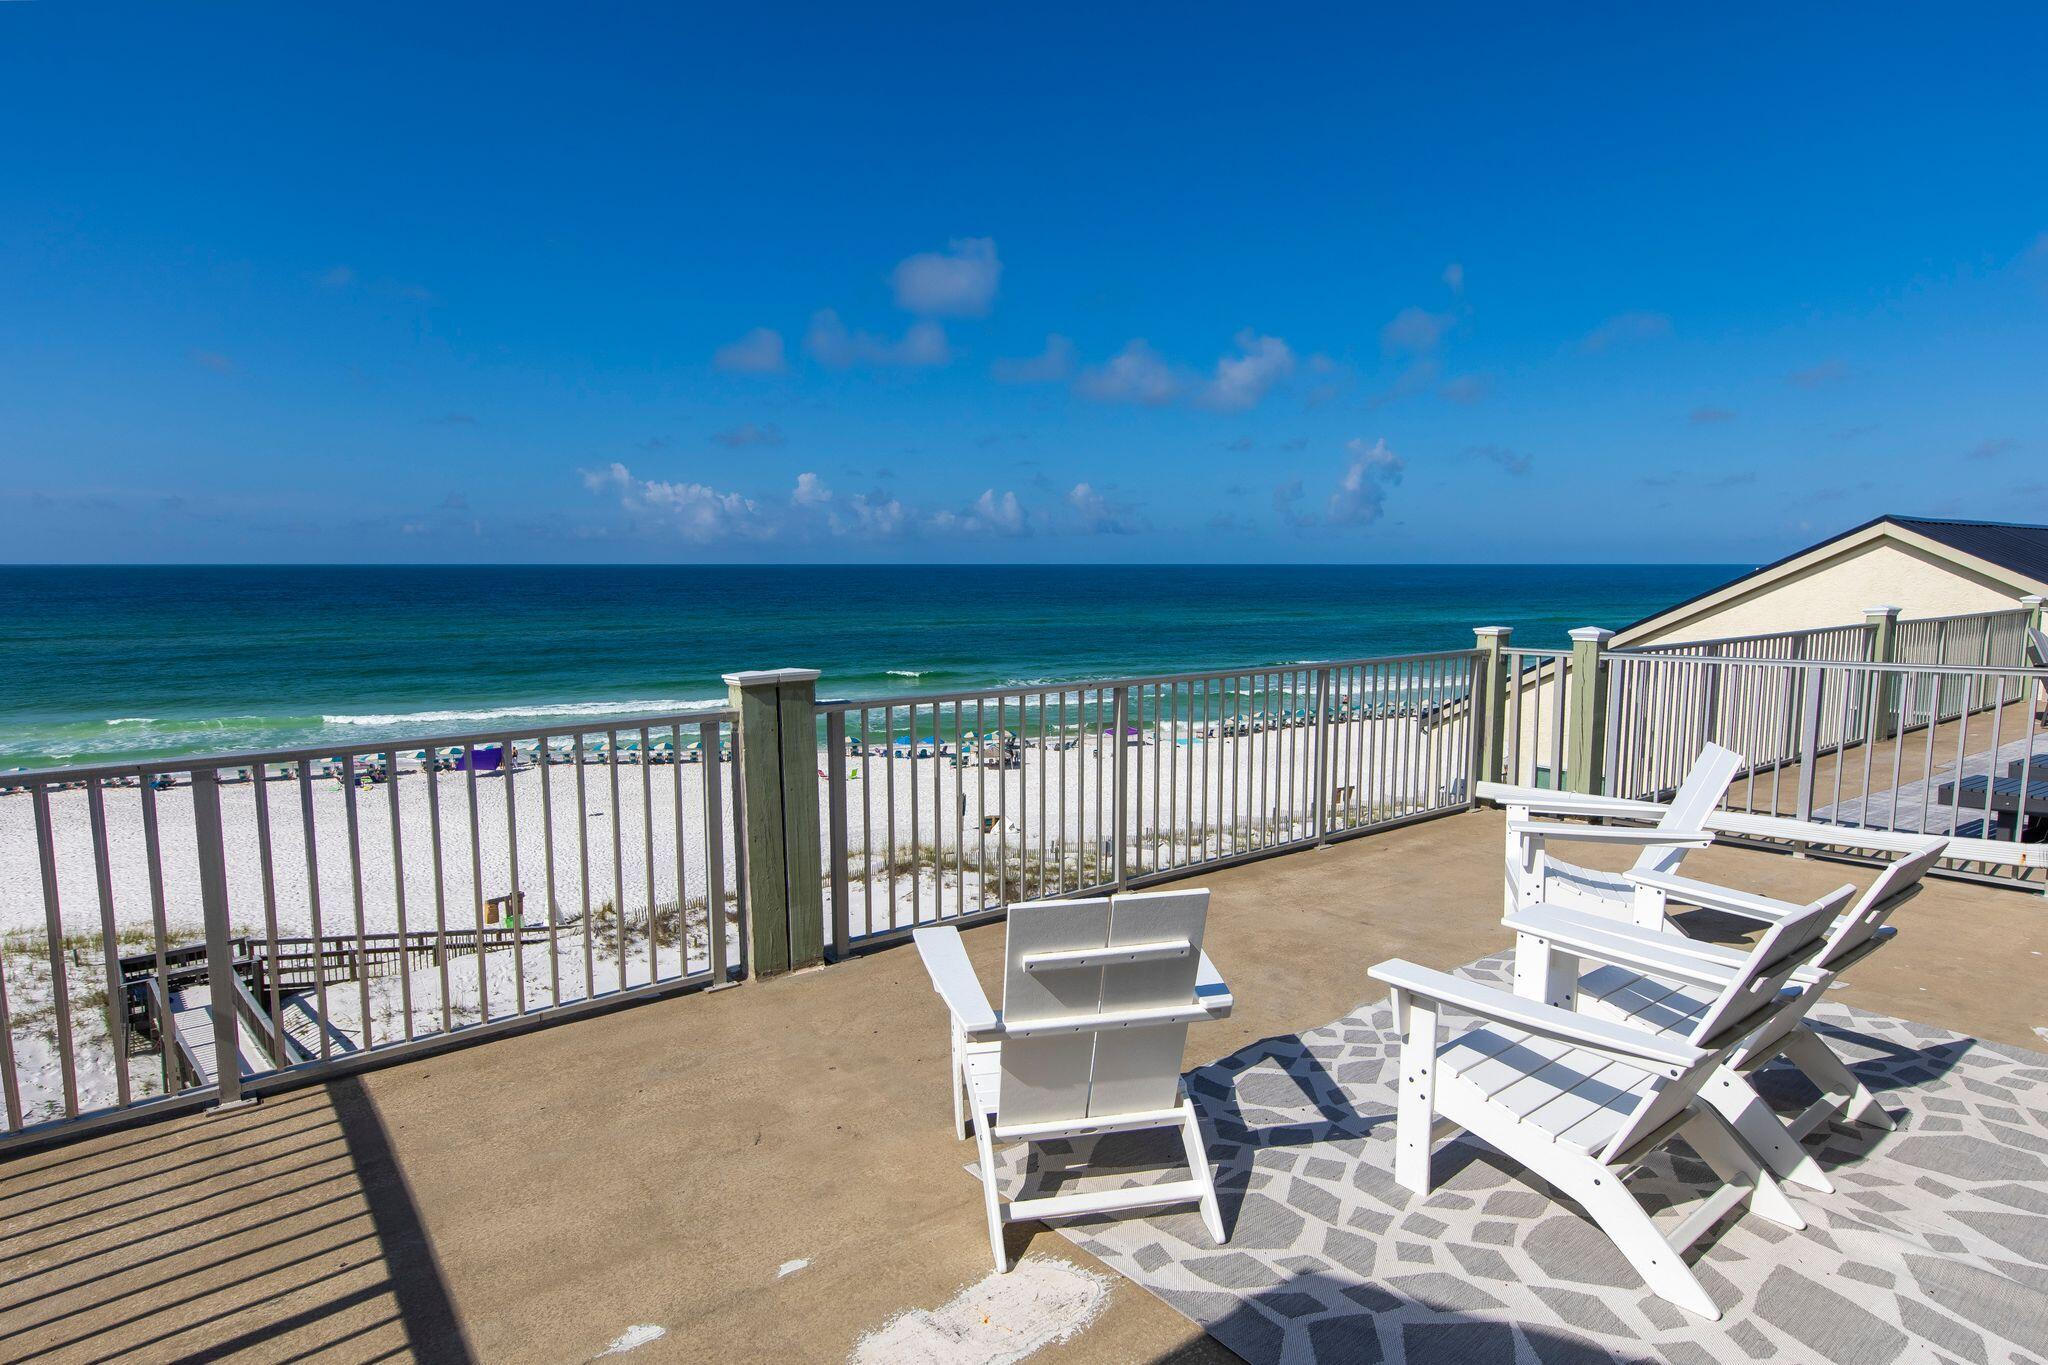 Enjoy endless Gulf views from your 750 sq. ft. private deck! Tucked away in a secluded part of Seagr